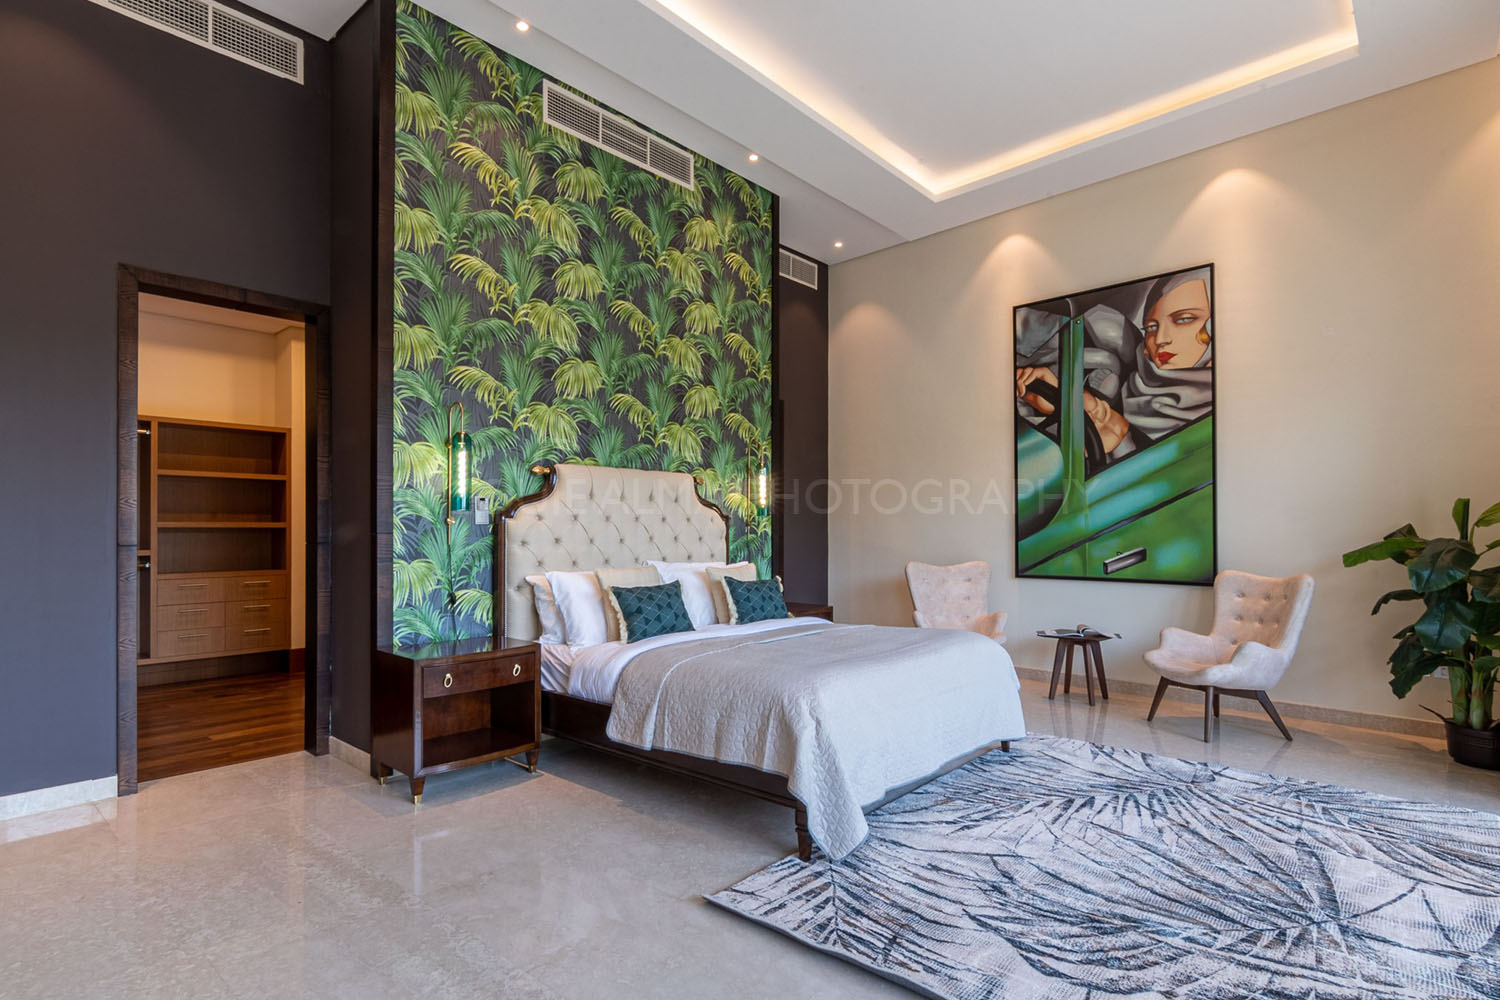 Real Estate Photography - Luxurious Villa in Palm, Dubai